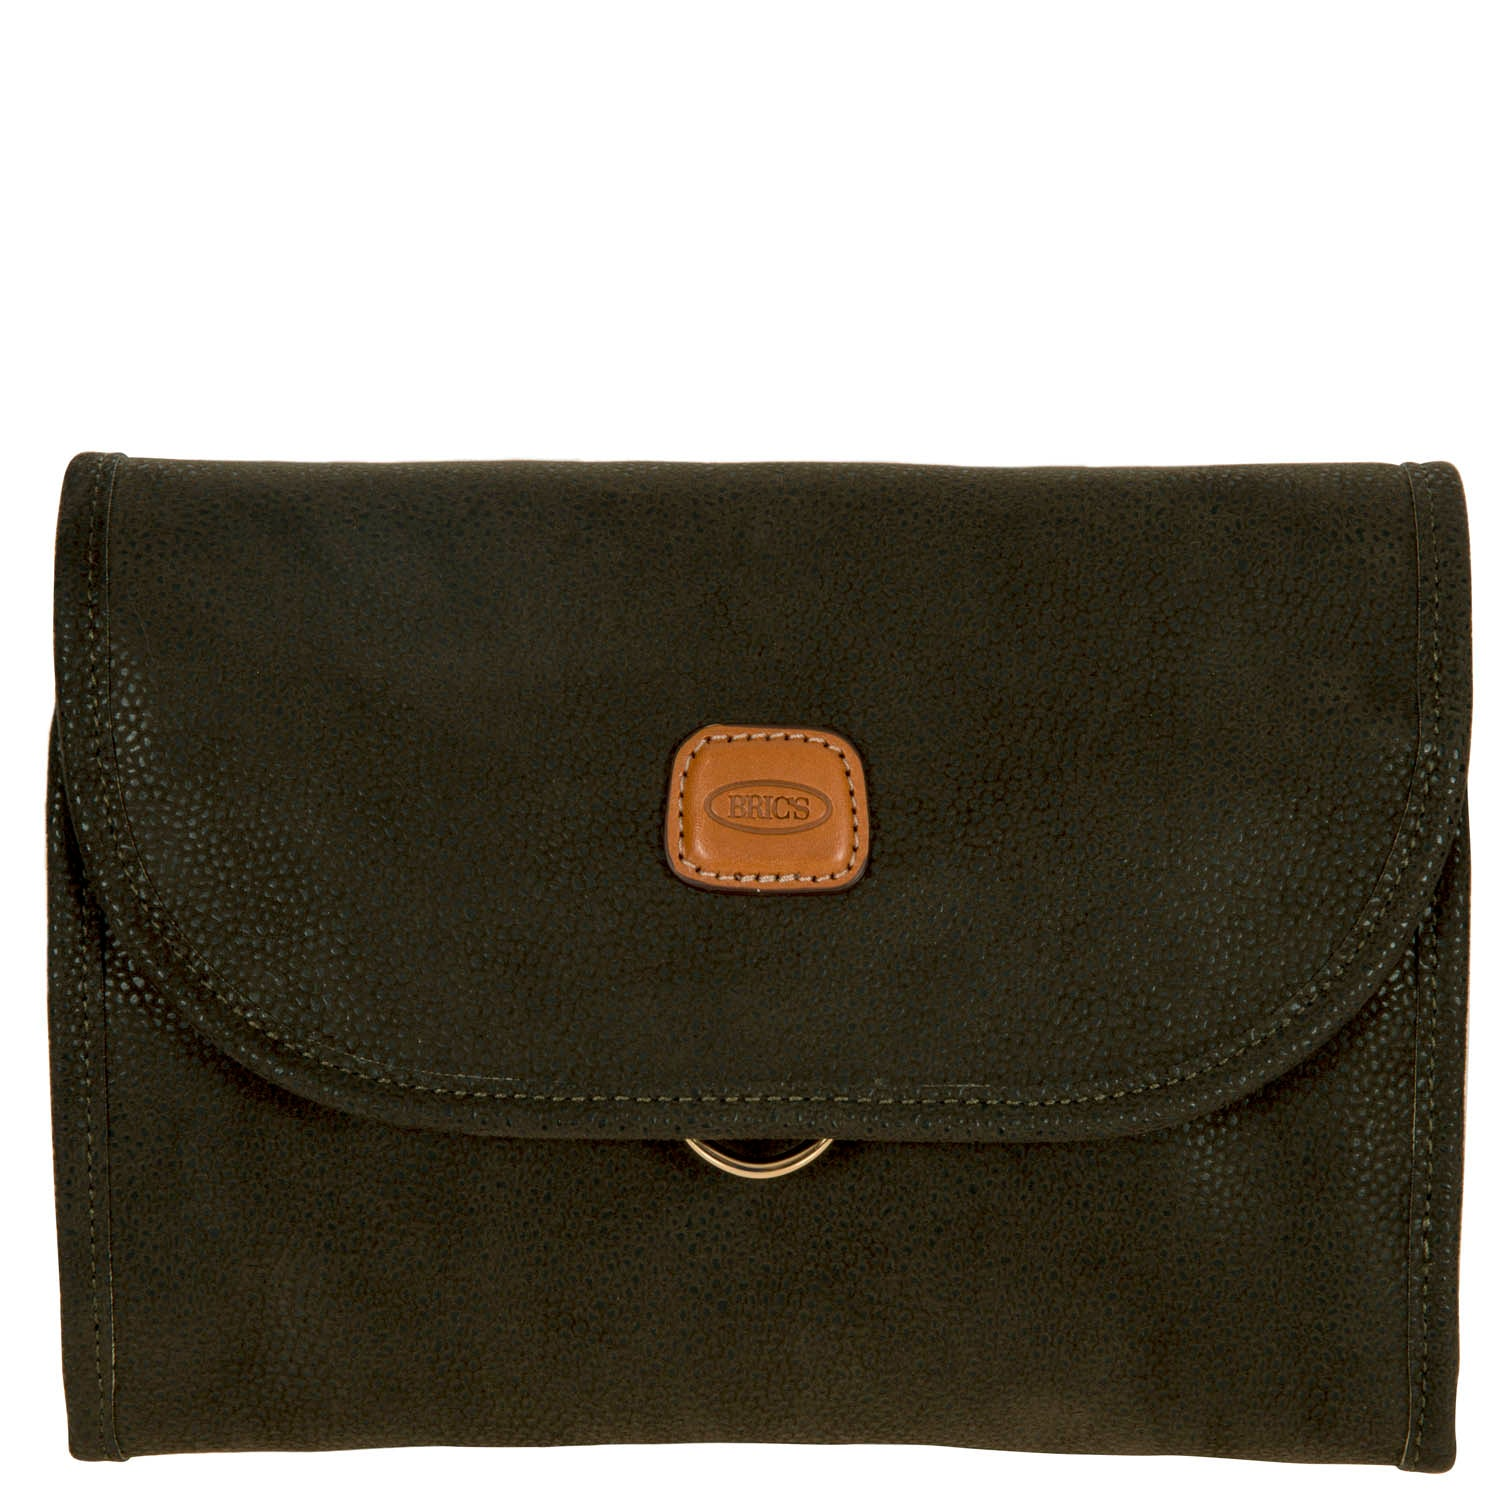 Brics Medium Hanging Washbag in Olive